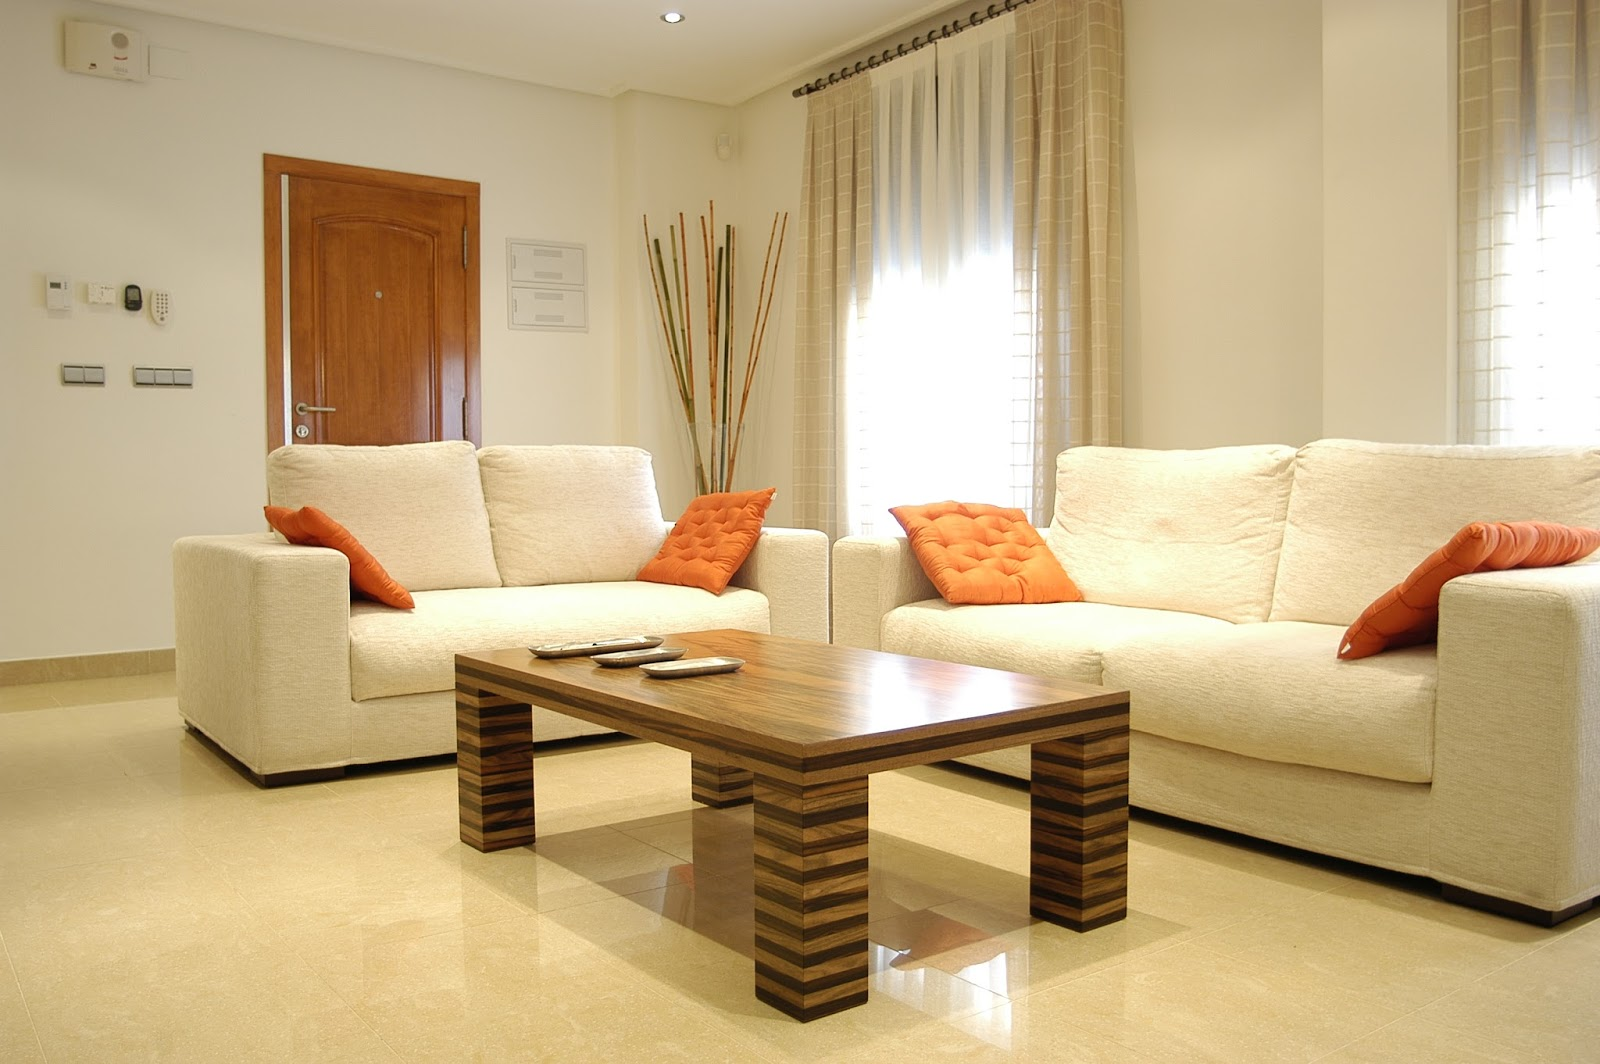 Interior Design Tricks And Tips To Decorate Your Home Interior